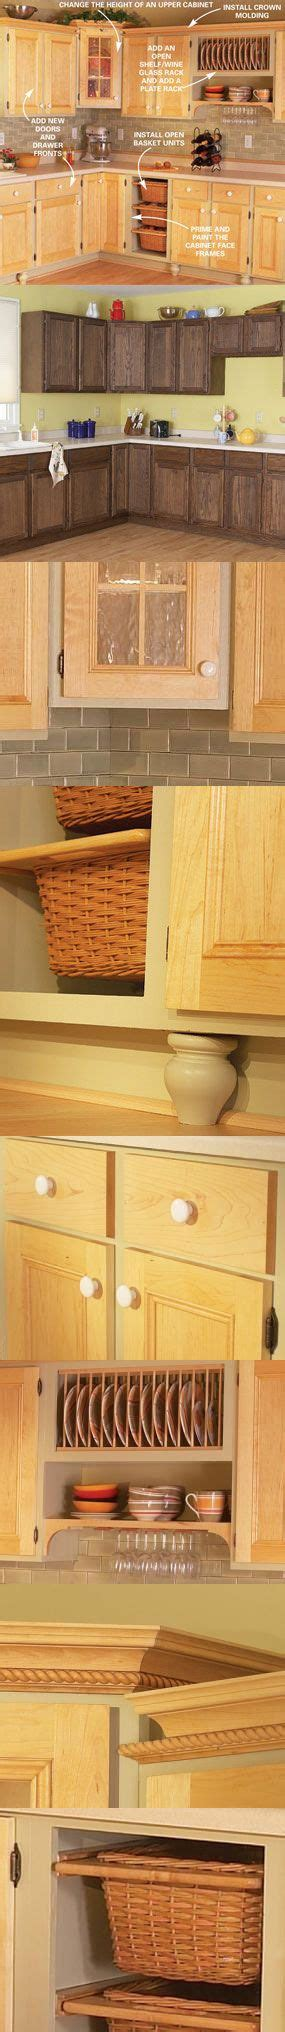 contact paper ideas for kitchen cabinets 38 best images about contact paper countertops designs on 9452